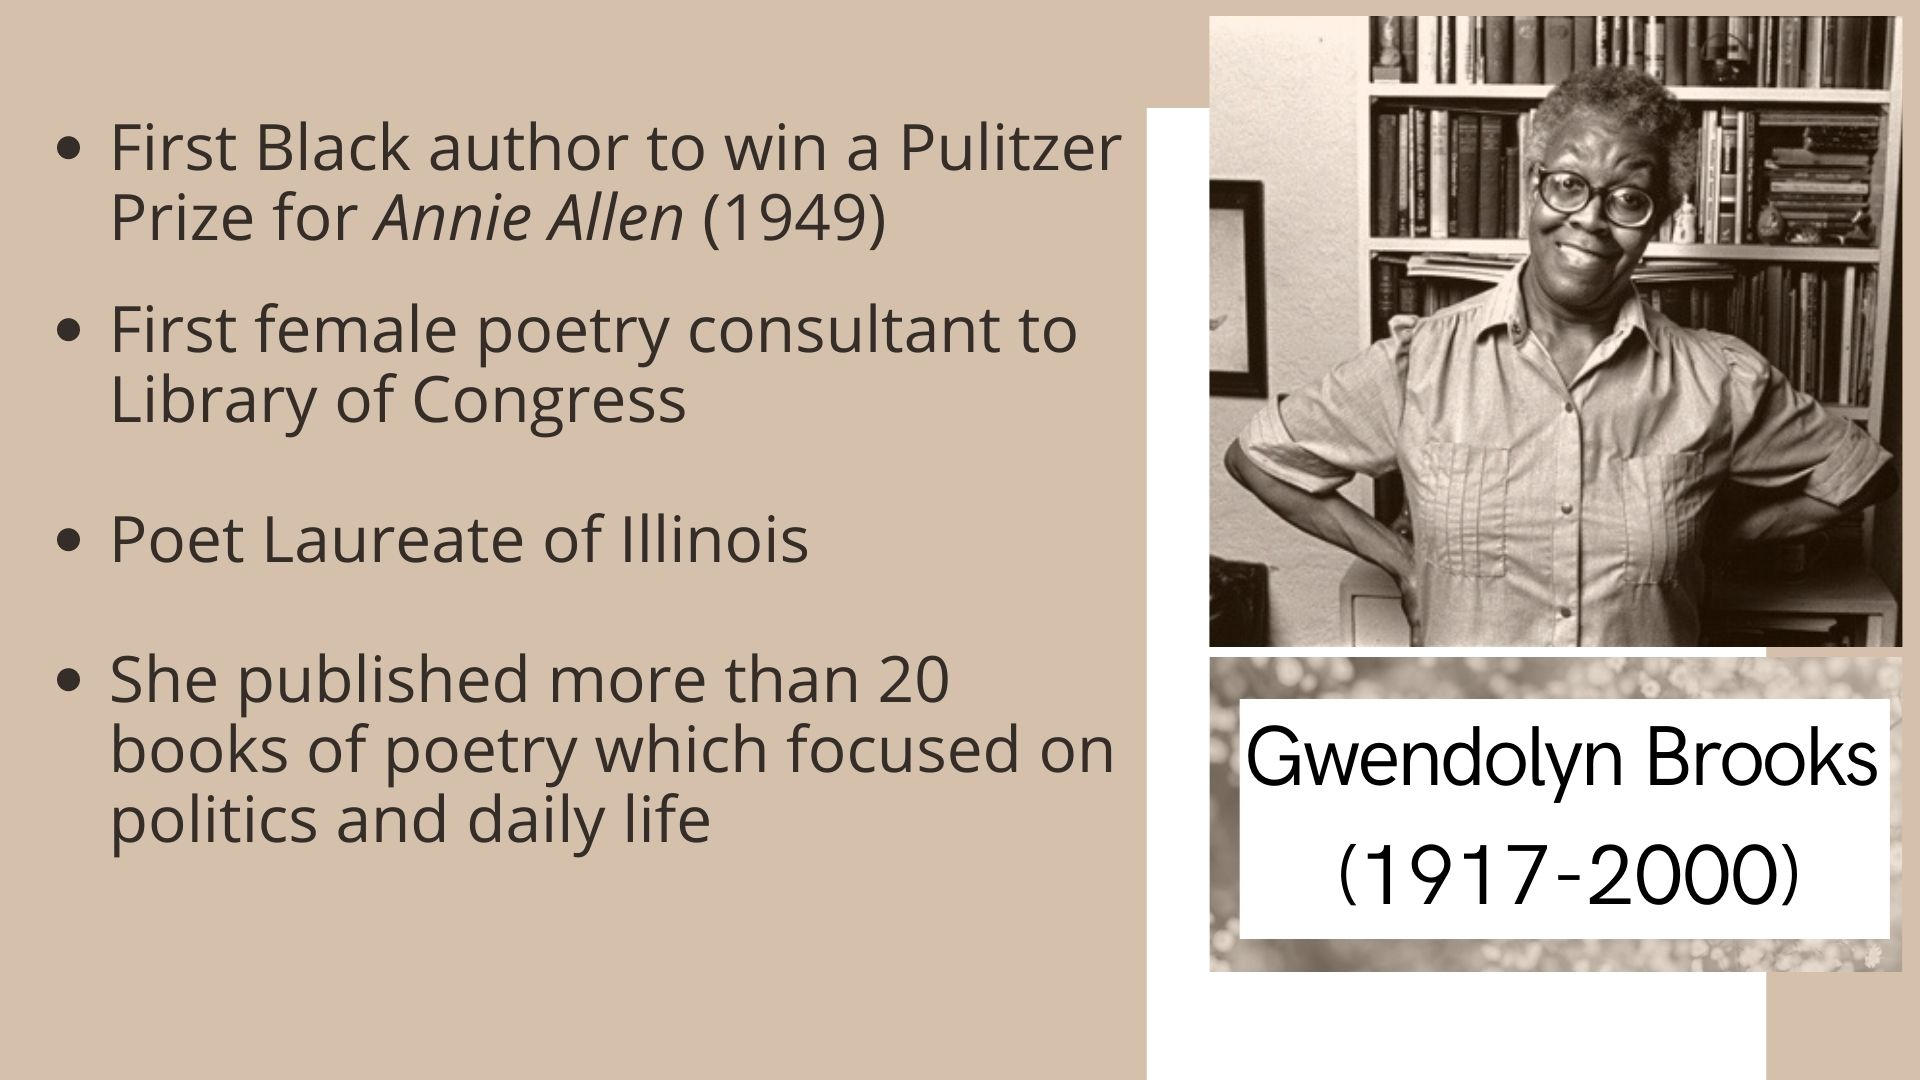 Gwendolyn Brooks  (1917-2000) First Black author to win a Pulitzer Prize for Annie Allen (1949)  First female poetry consultant to Library of Congress  Poet Laureate of Illinois  She published more than 20 books of poetry which focused on politics and daily life